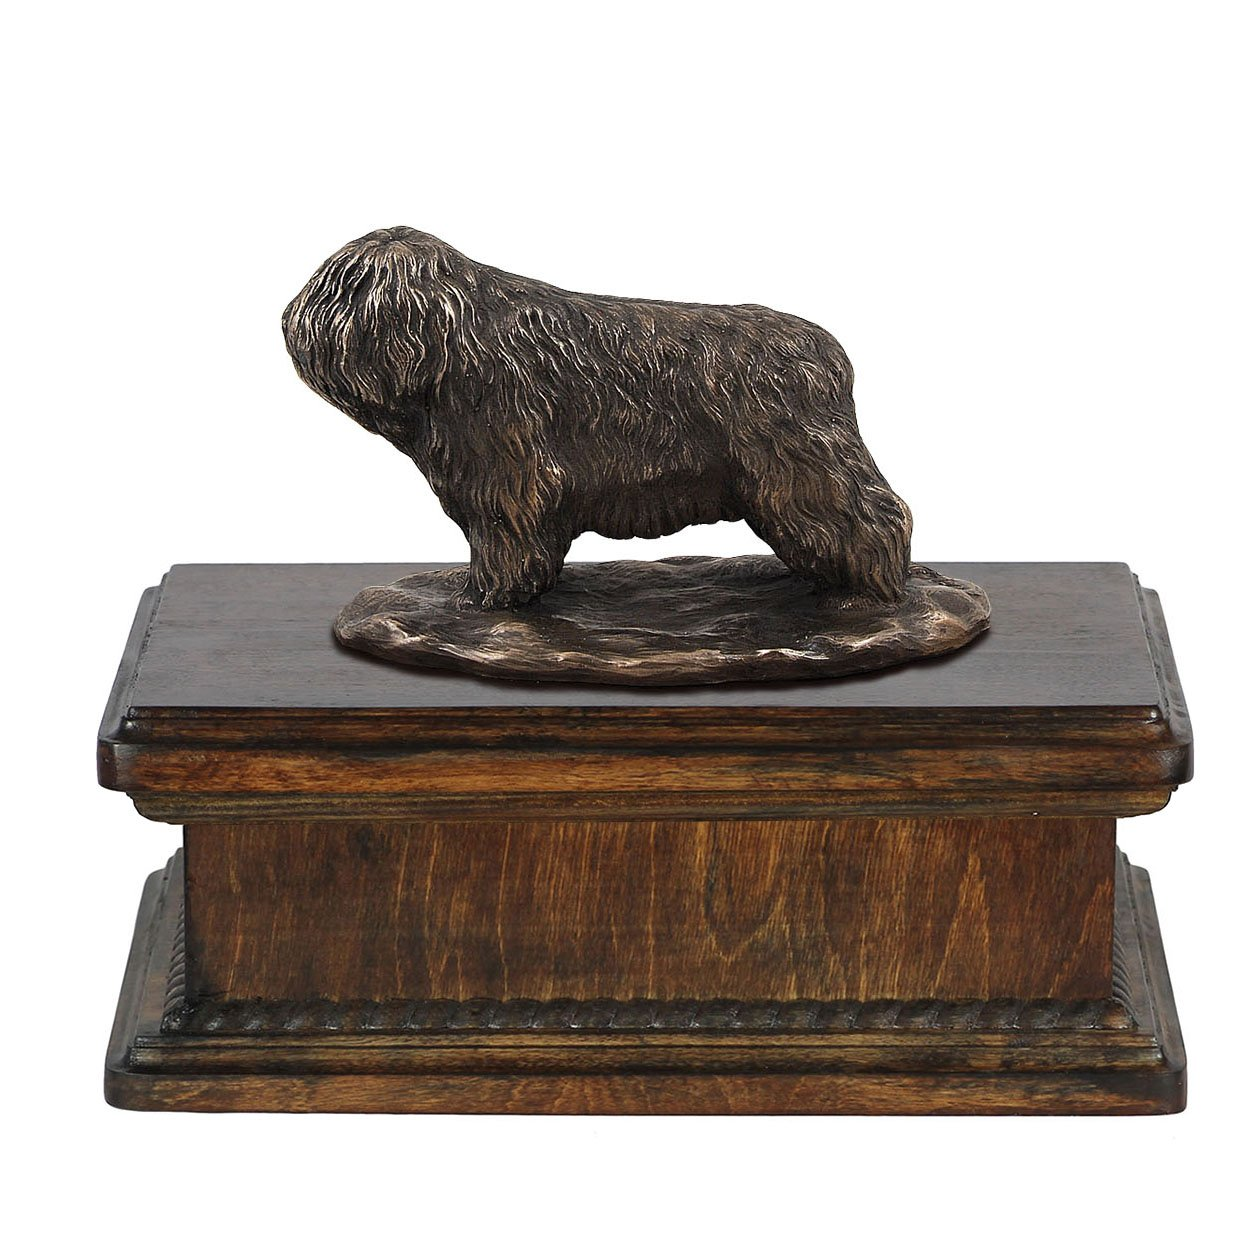 Polish Lowland Sheepdog, memorial, urn for dog's ashes, with dog statue, exclusive, ArtDog